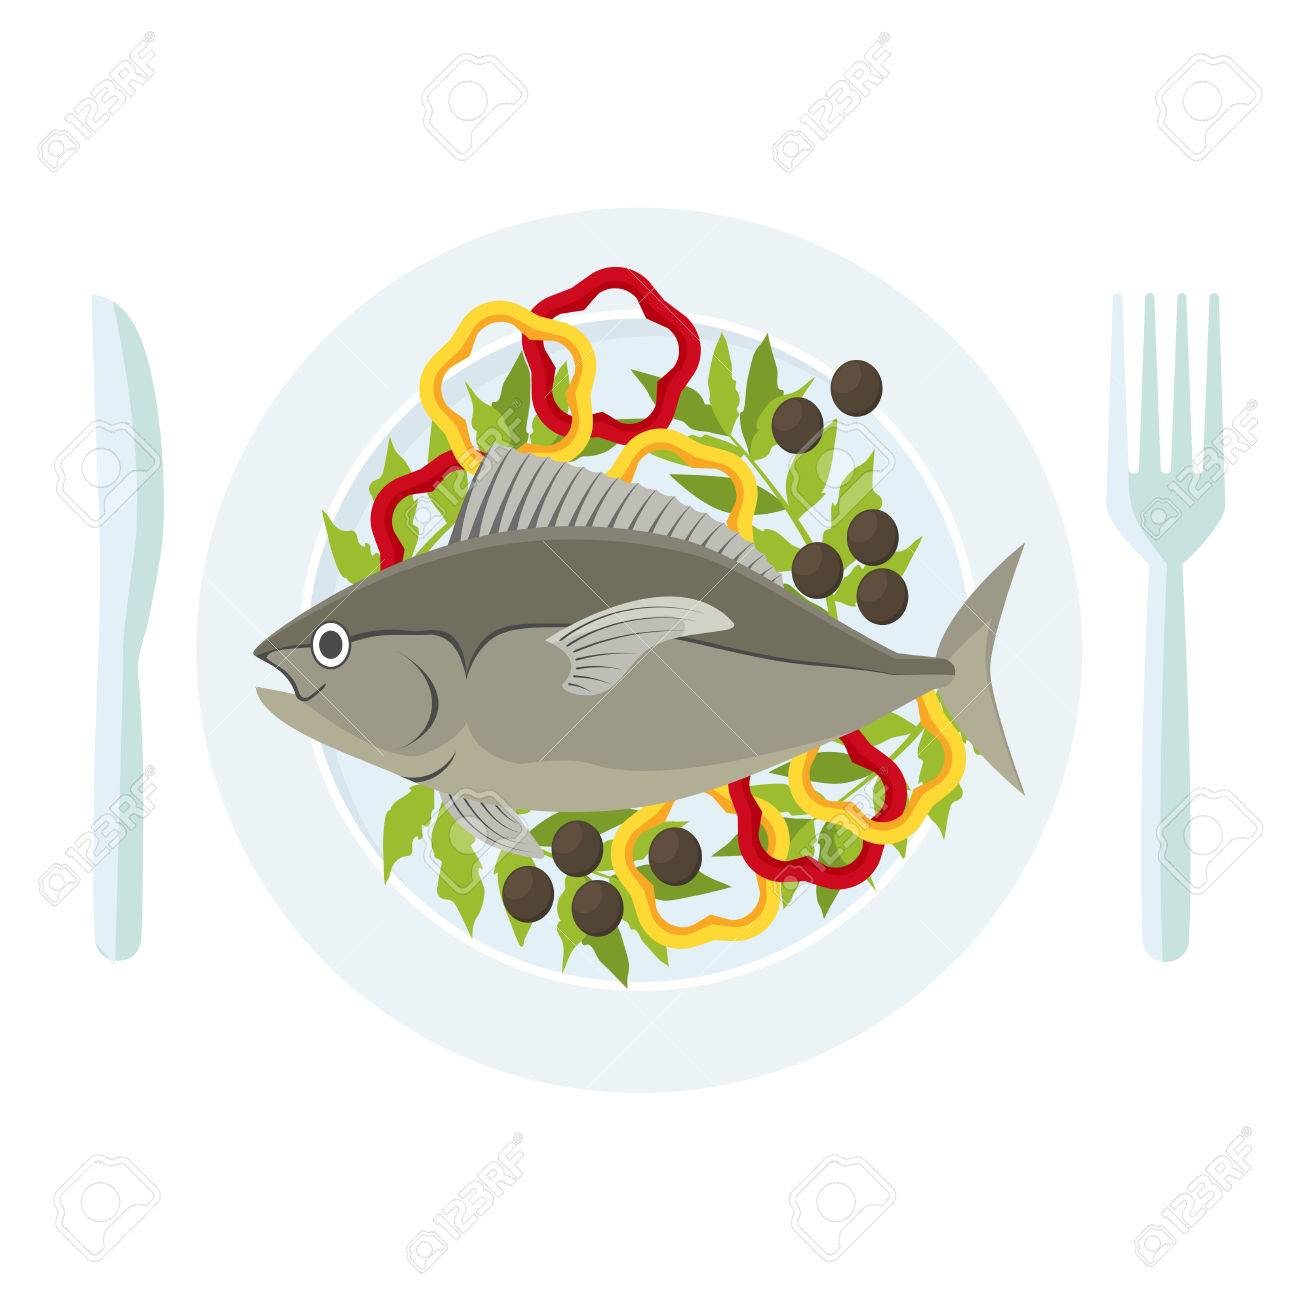 Cartoon Fish and Fresh Vegetables on a Plate. Vector.